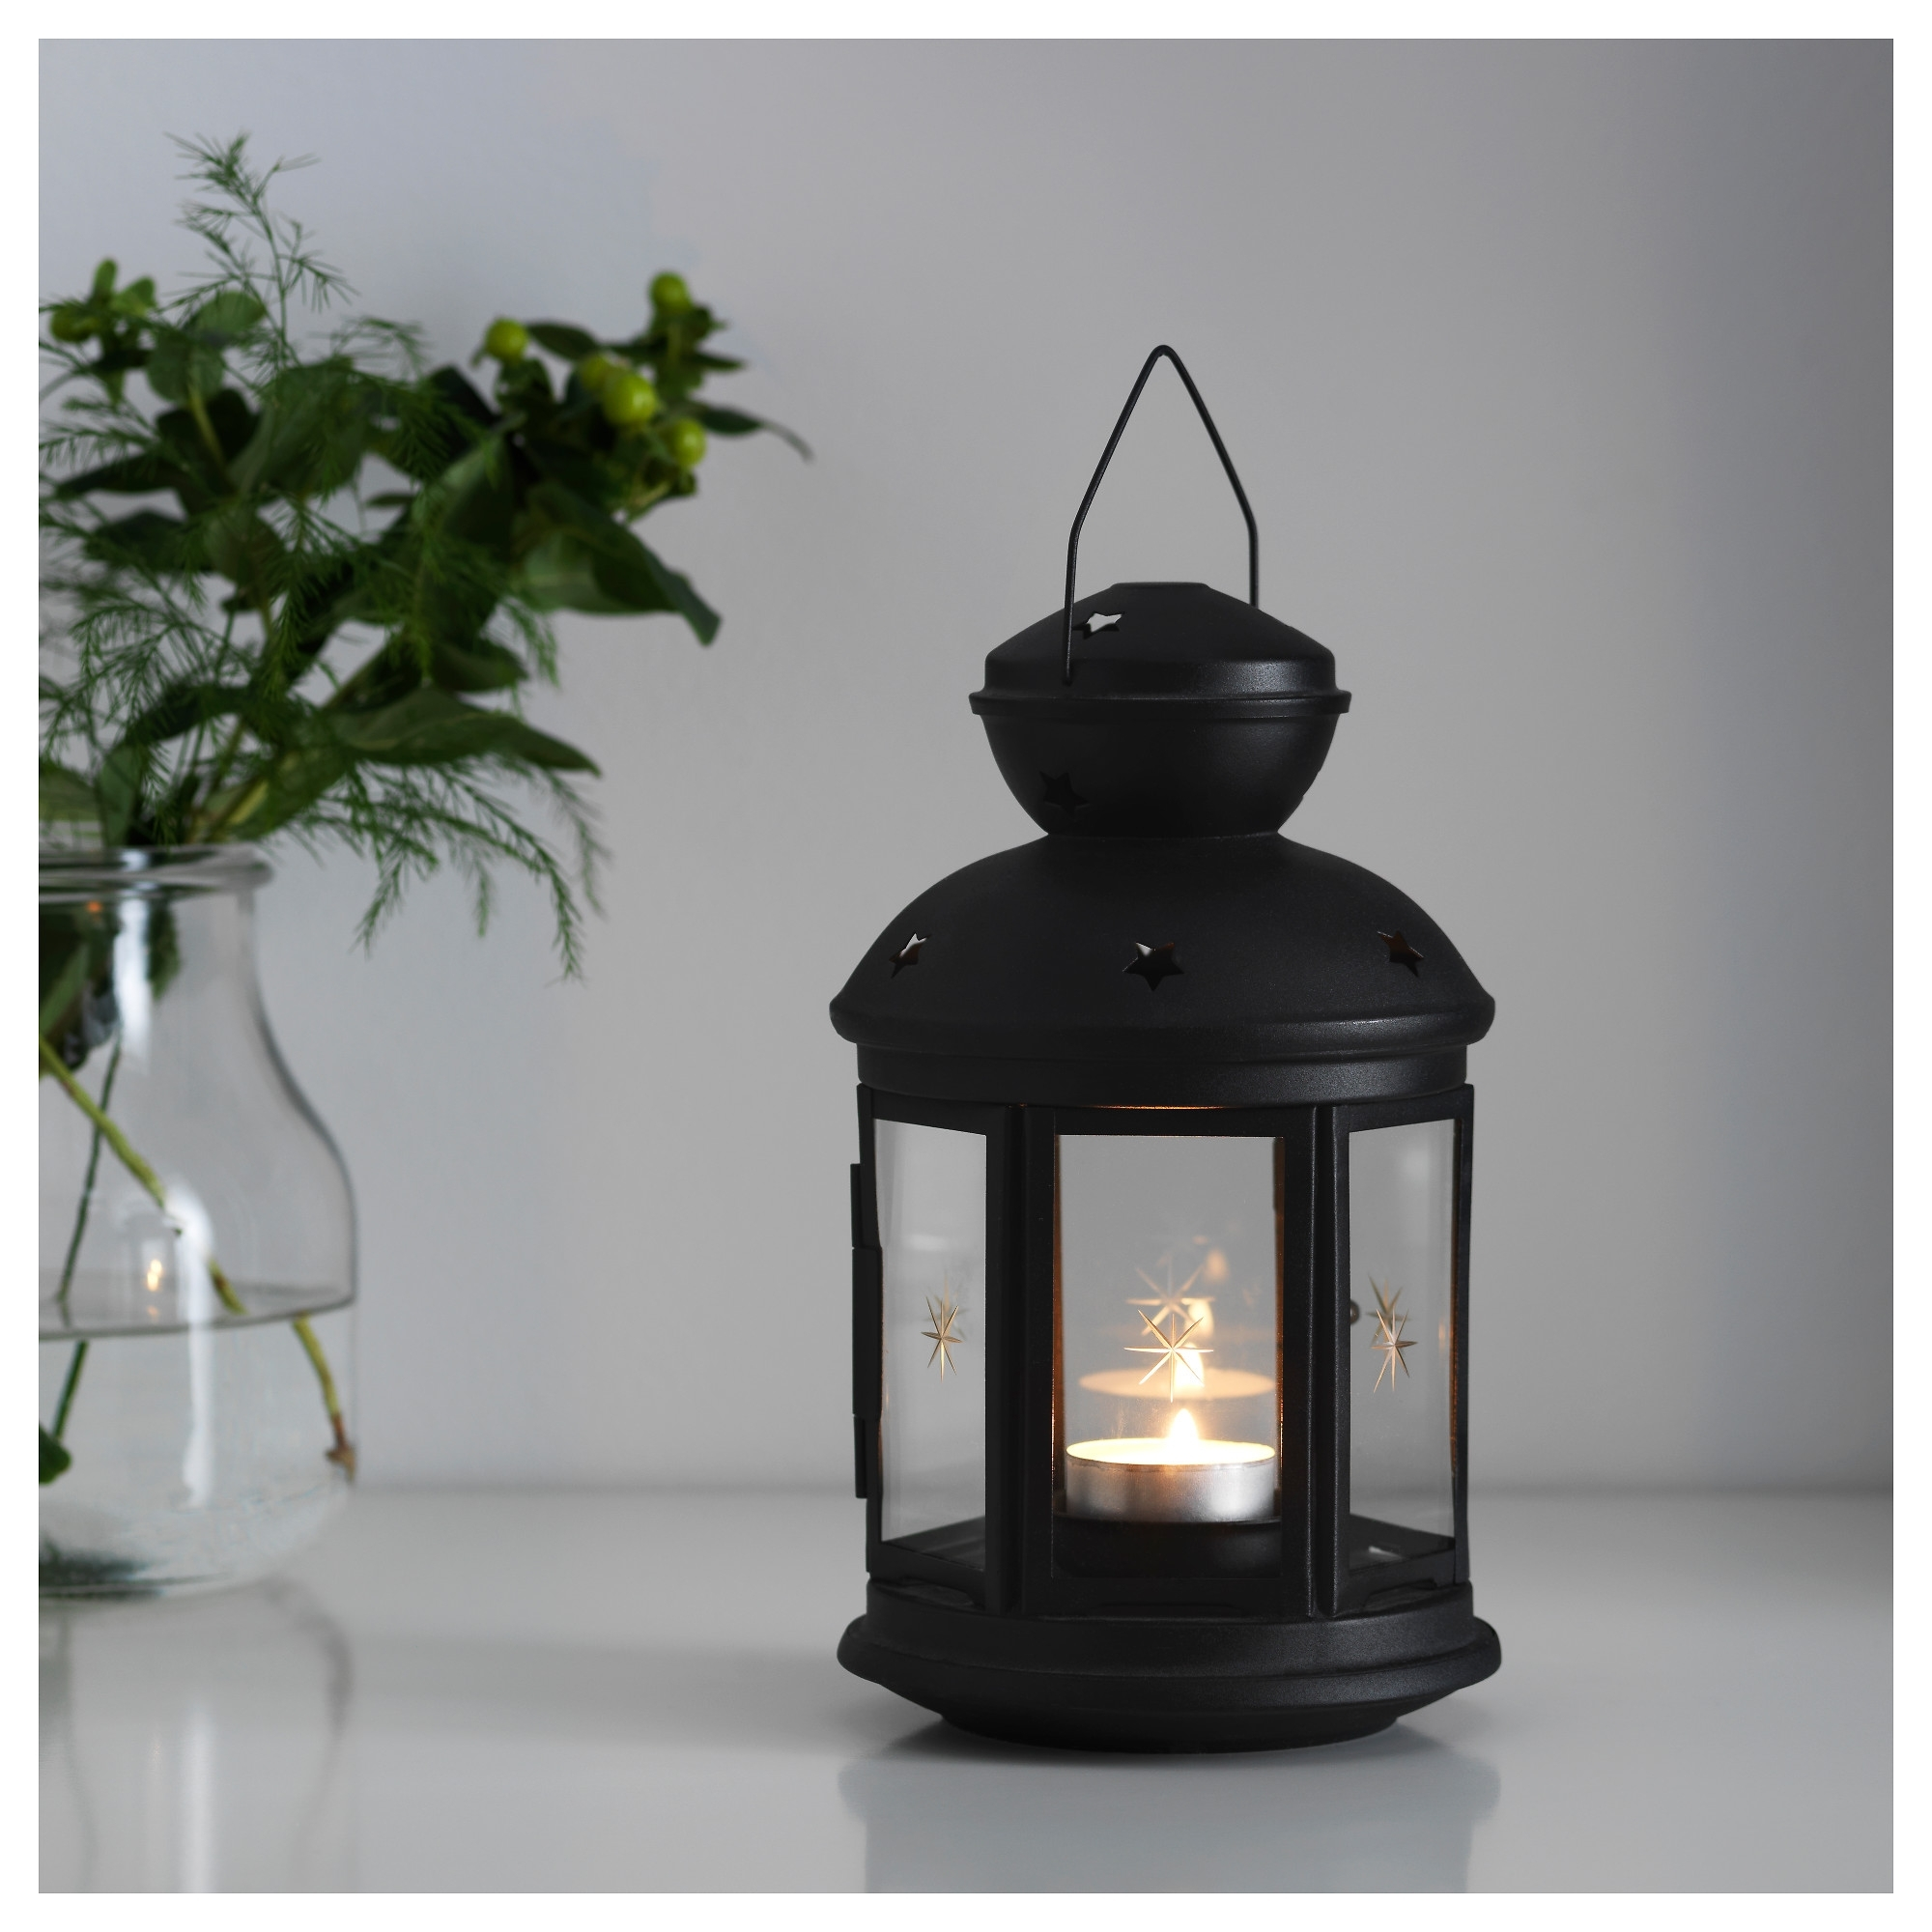 Hanging Outdoor Tea Light Lanterns Throughout Fashionable Rotera Lantern For Tealight – Ikea (View 3 of 20)